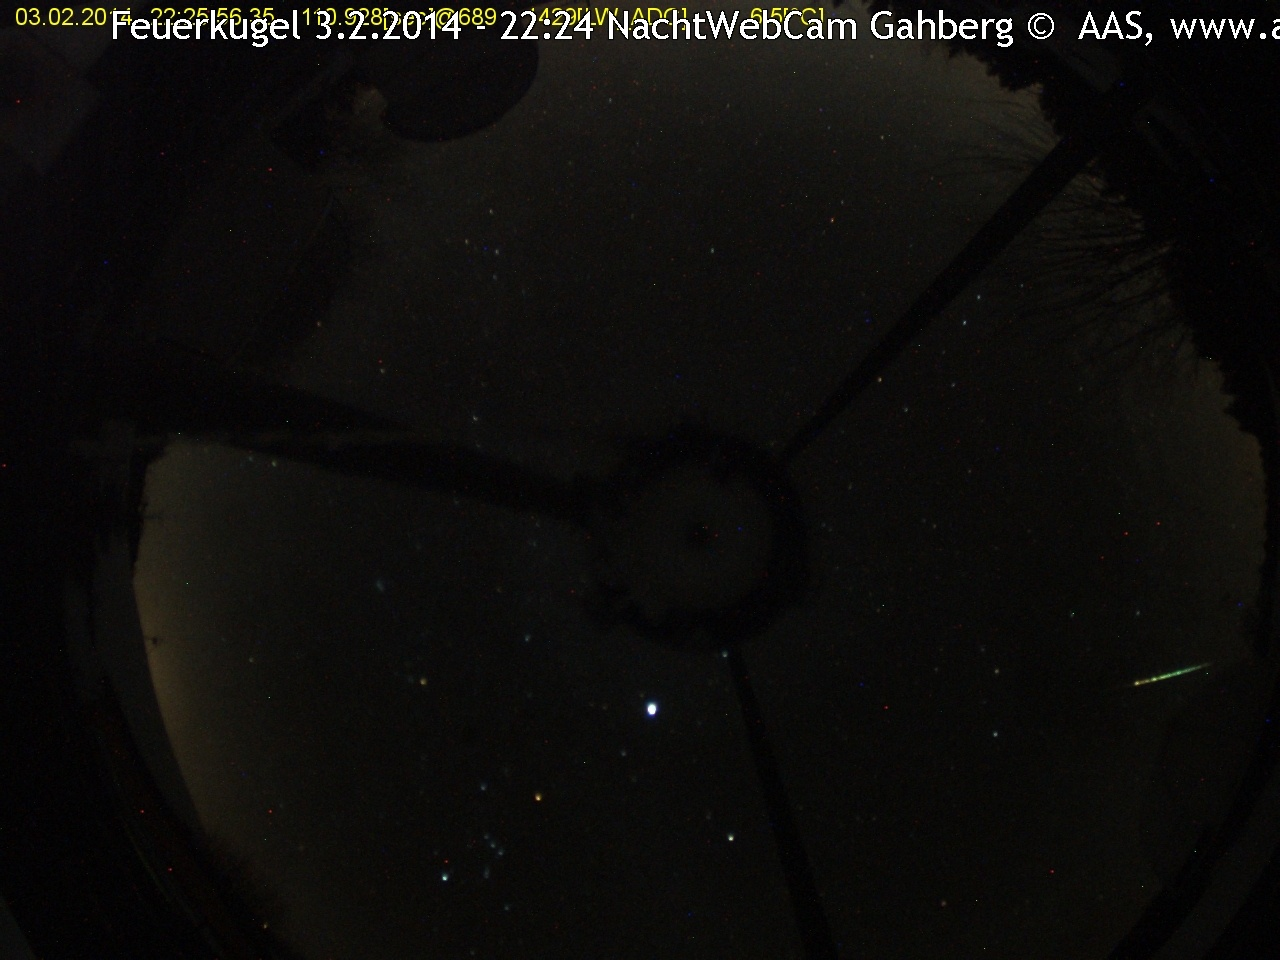 Solar System-FK 3.2.2014 WebCam © image-owner(s)